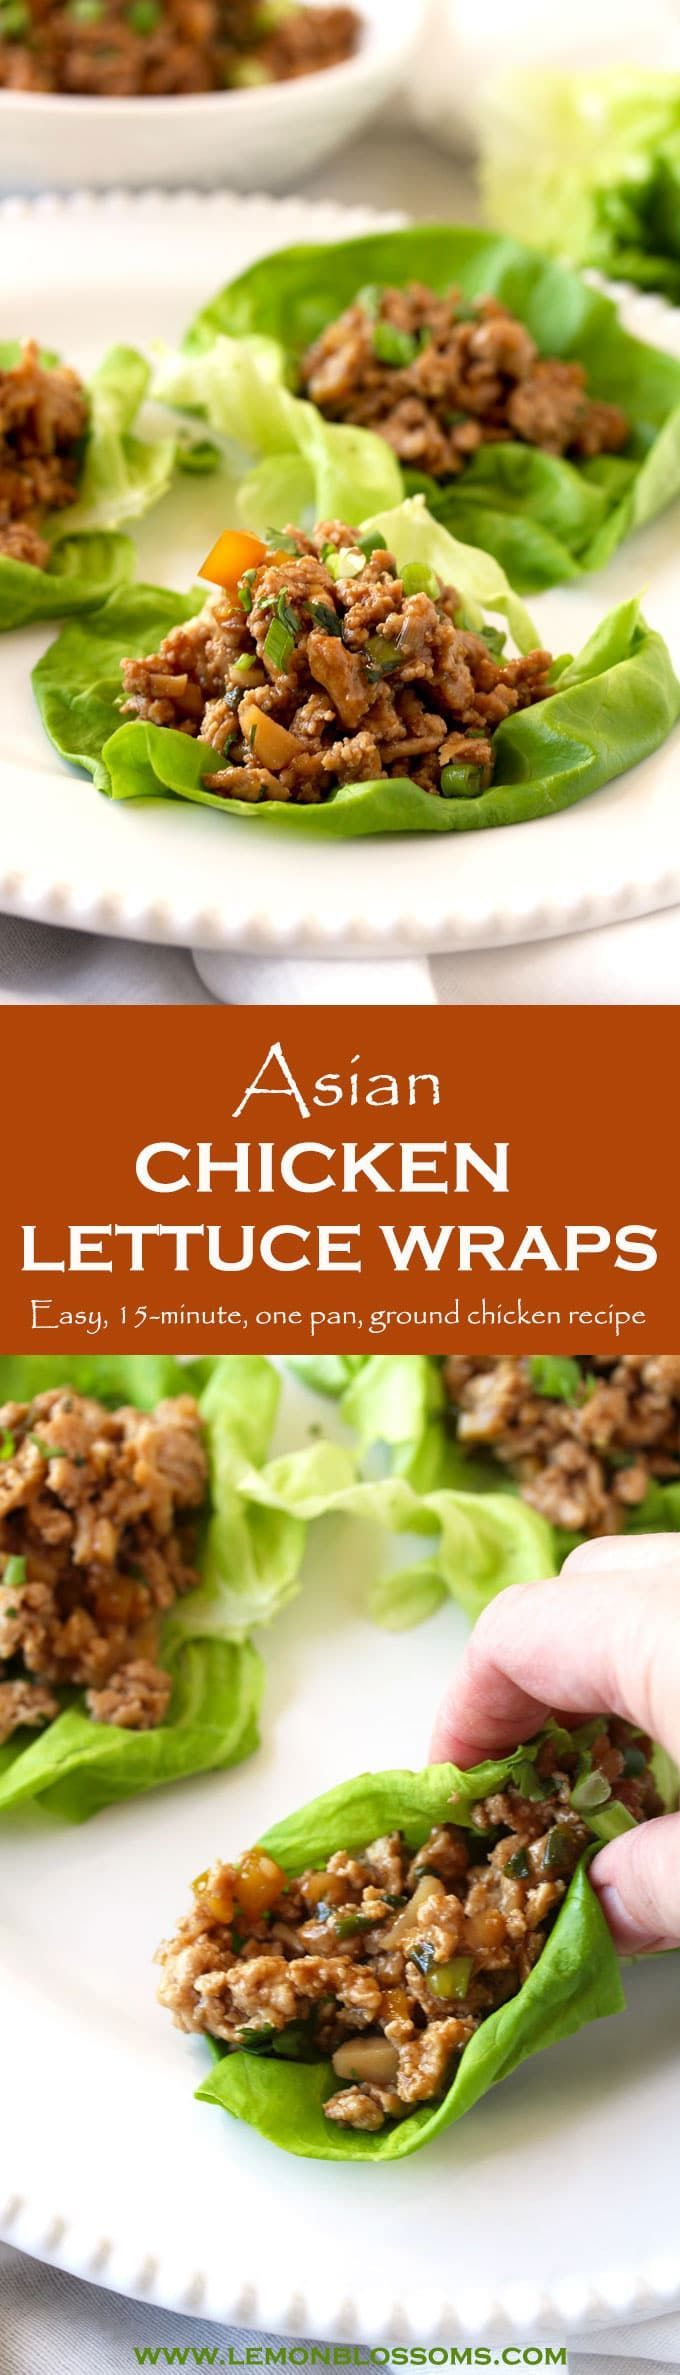 This Chicken Lettuce Wrap recipe only takes 15 minutes to make. Made with ground chicken, ginger, garlic and tossed in a delicious 3 ingredients sauce! Perfect to serve as an appetizer, lunch or dinner. This easy recipe is one your family and friends will love! #lettucewraps #Asian #chicken via @lmnblossoms